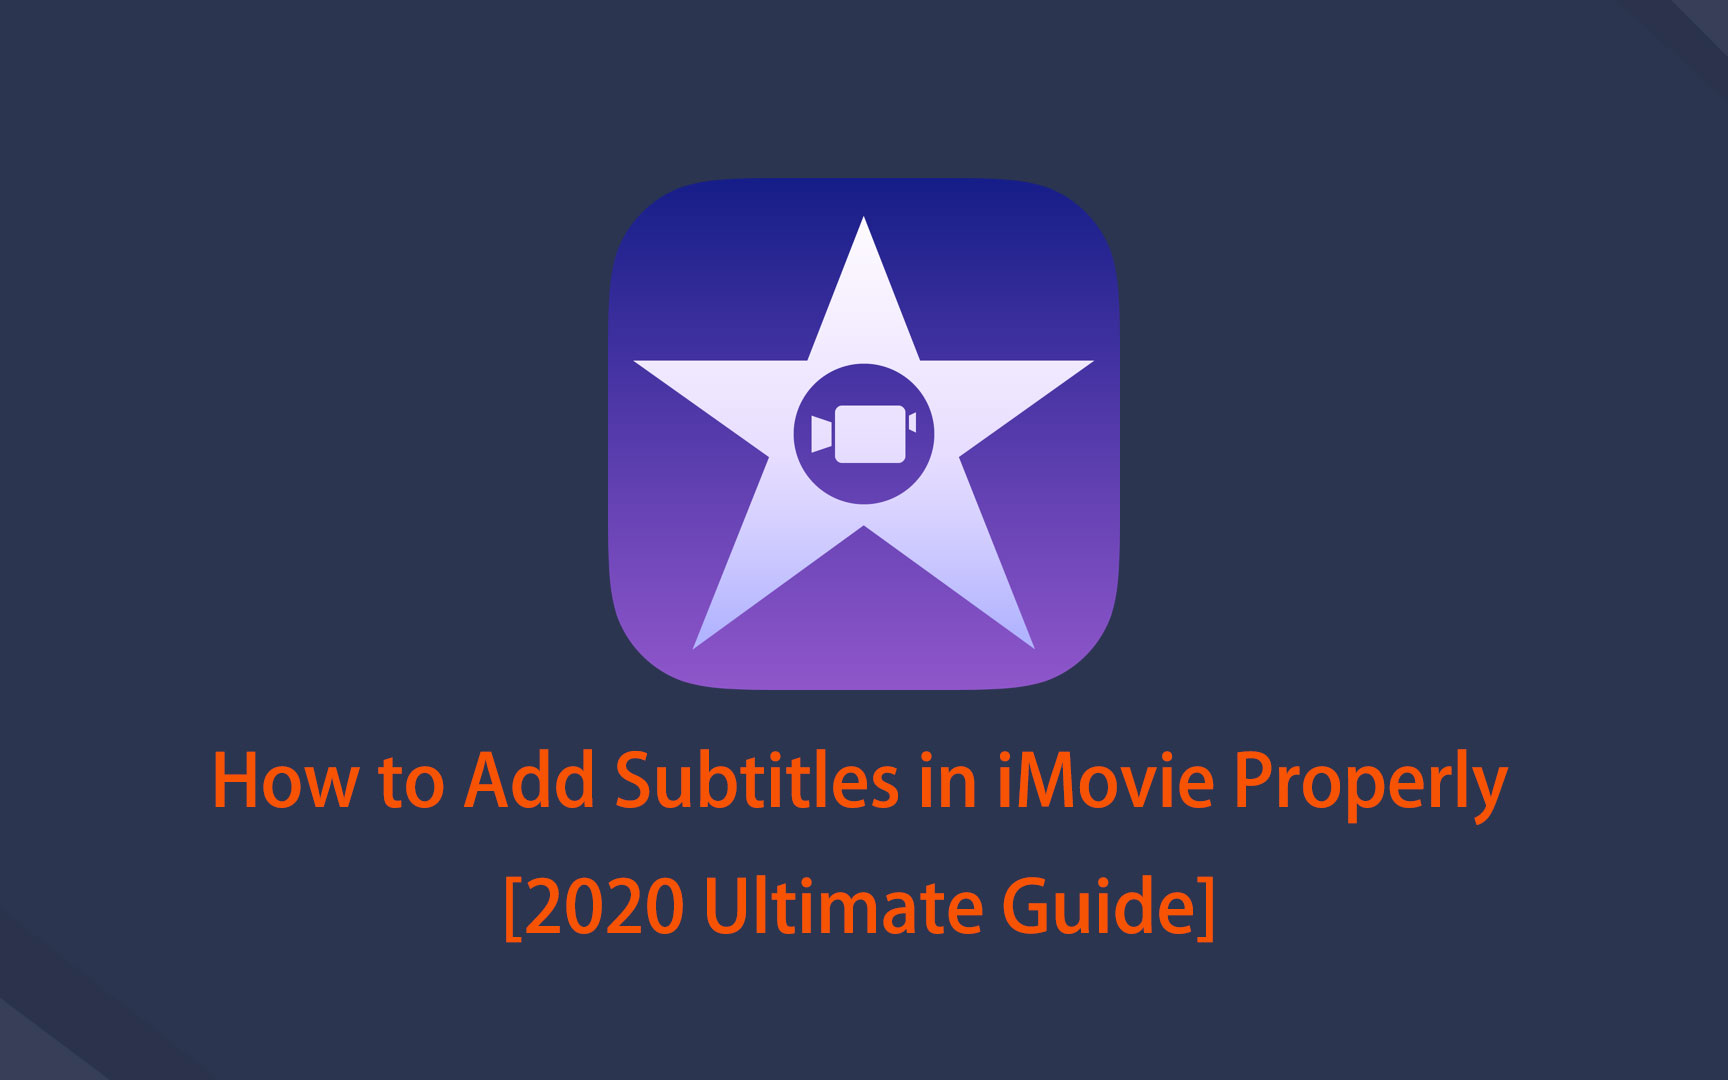 6 How to Add Subtitles in iMovie Properly